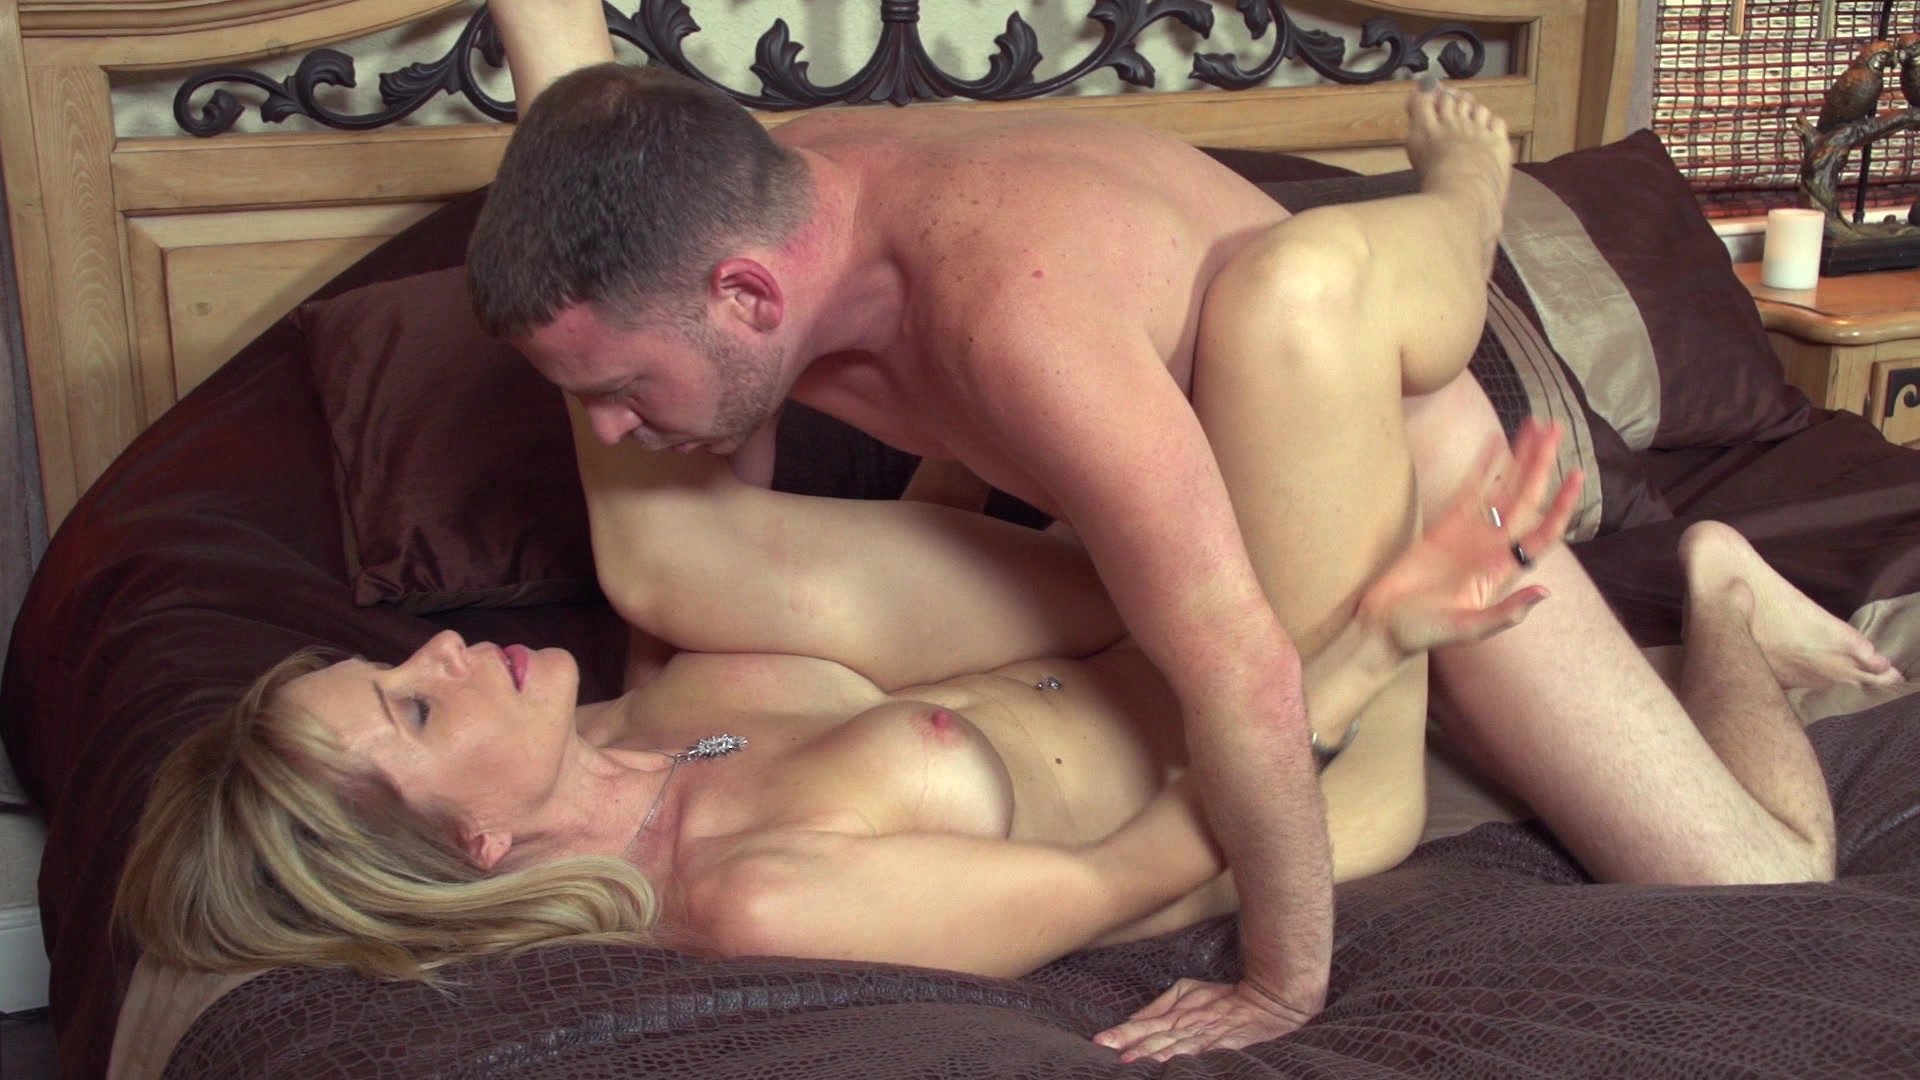 free video preview image 5 from neighborhood moms down to fuck